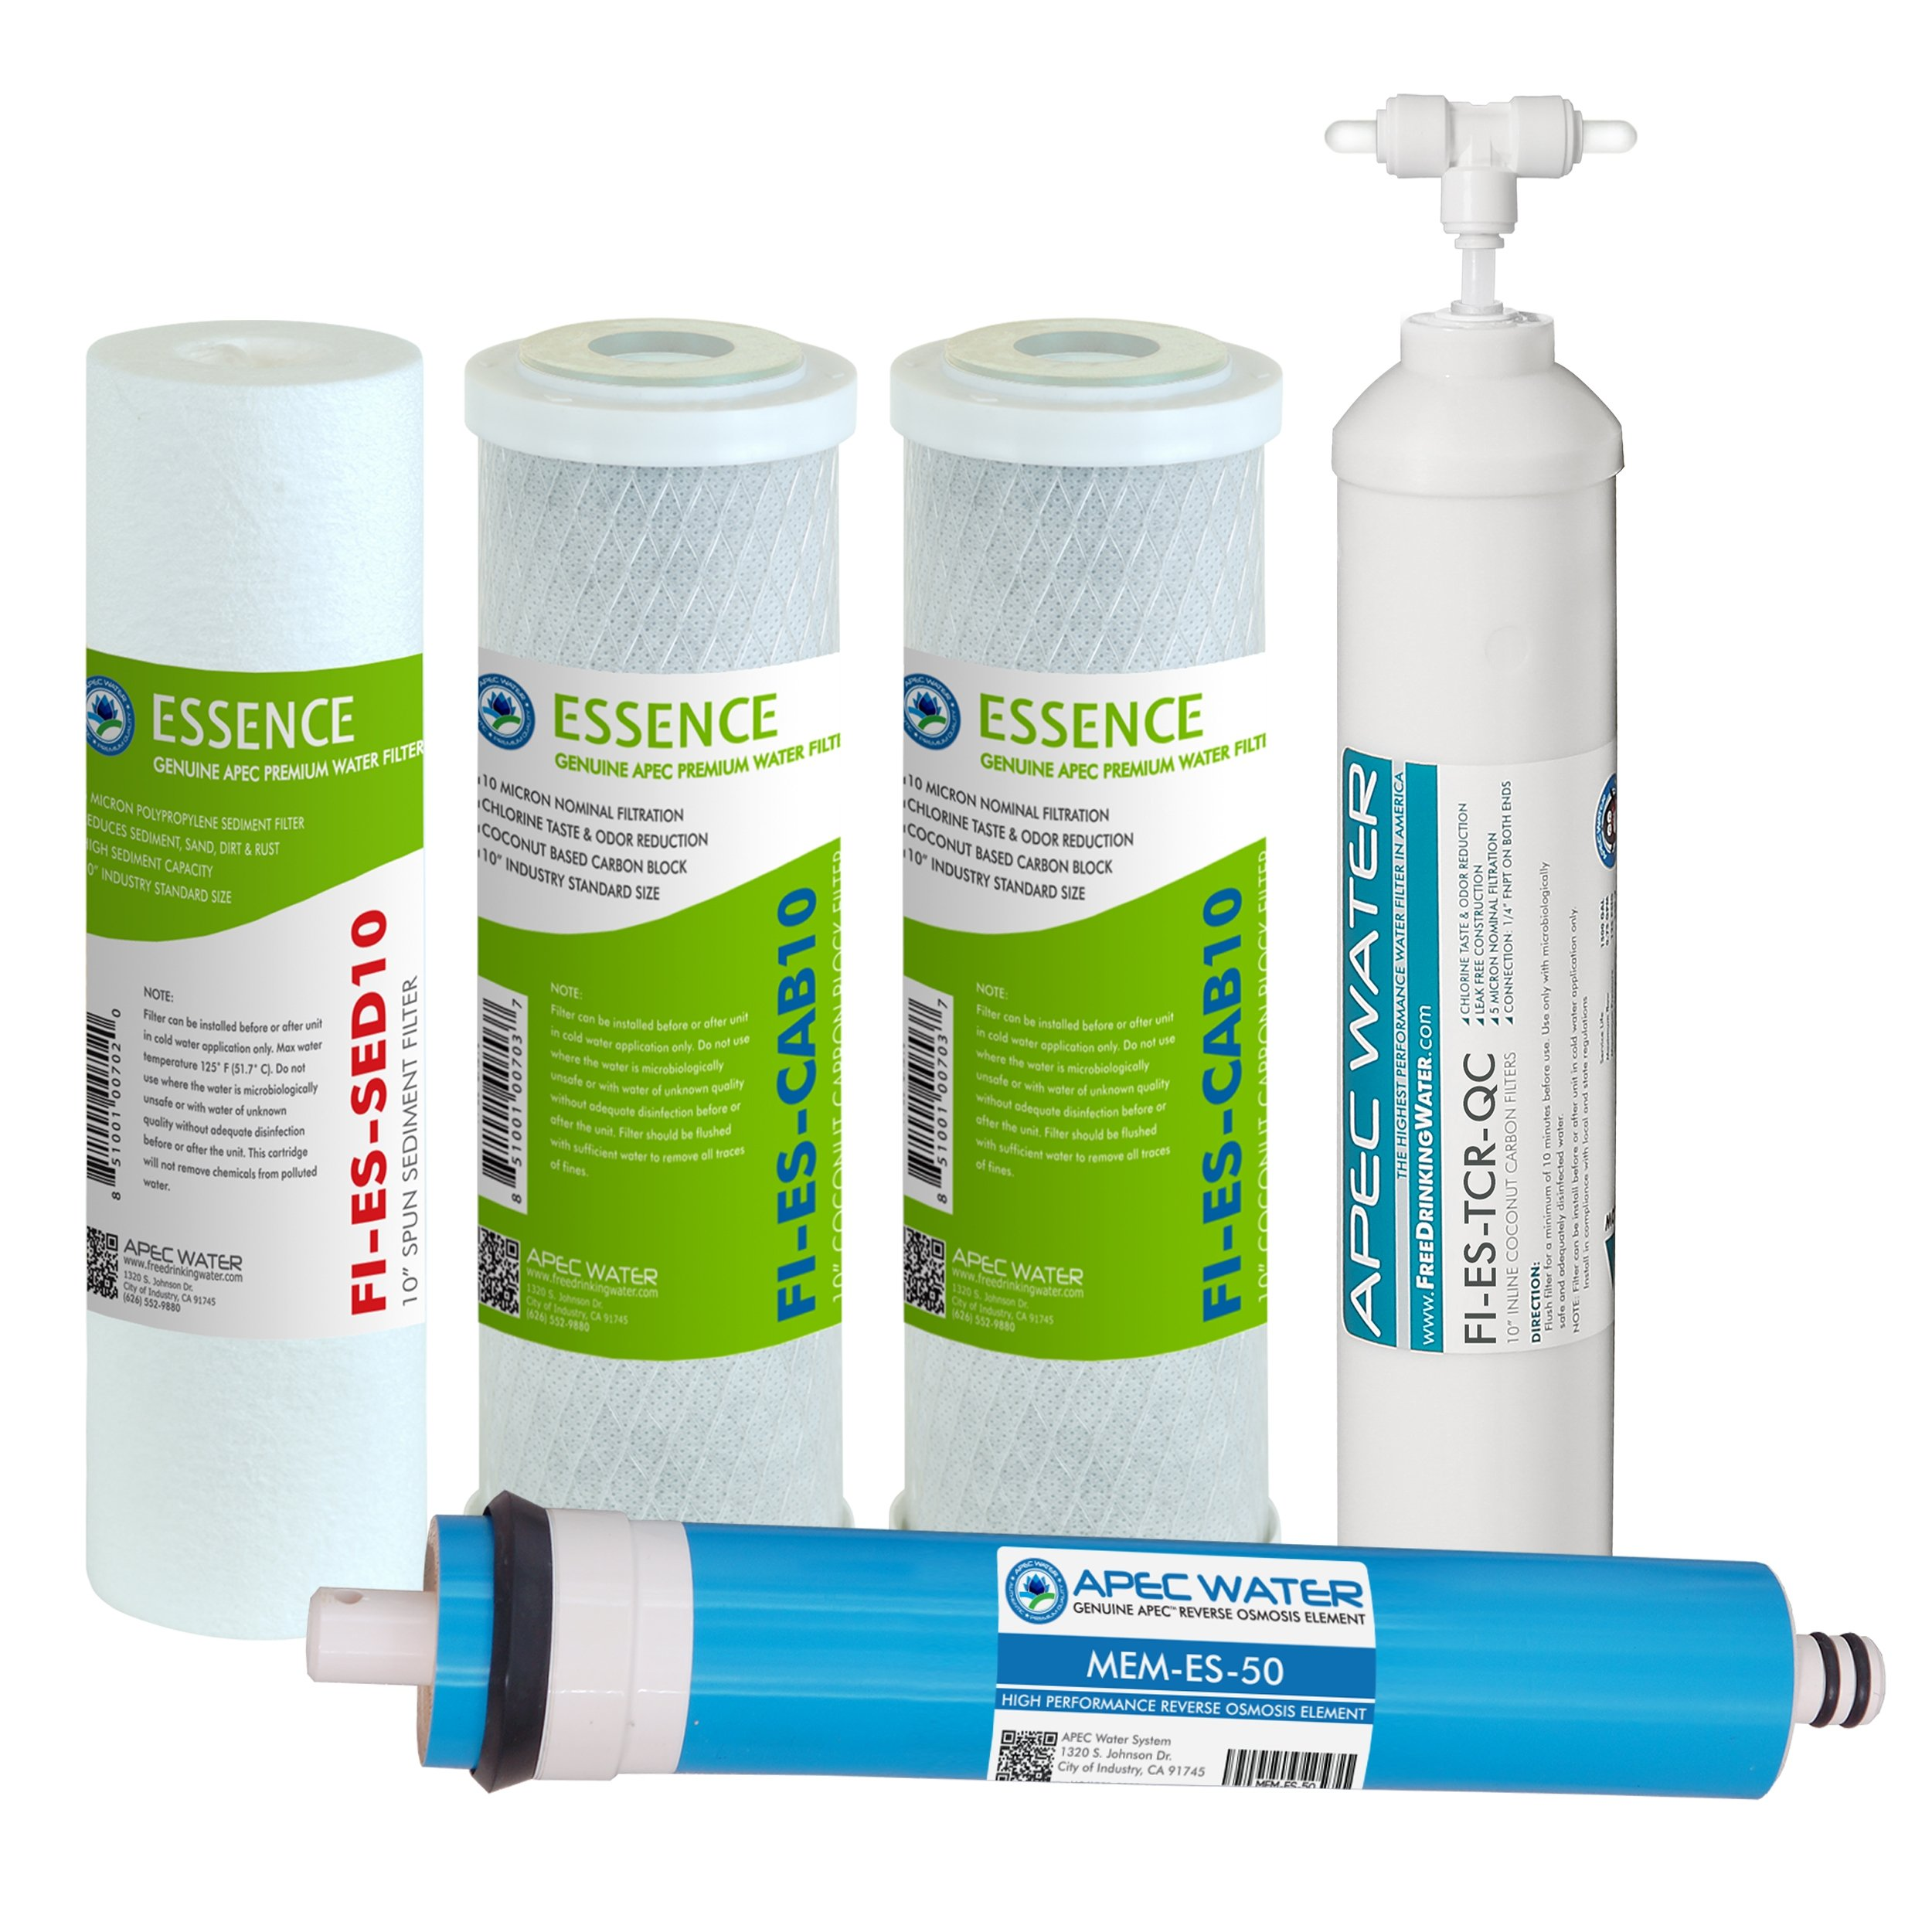 APEC Water Systems FILTER-MAX-ES50 50 GPD High Capacity Complete Replacement Filter Set For Essence Series Reverse Osmosis Water Filter System Stage 1-5 by APEC Water Systems